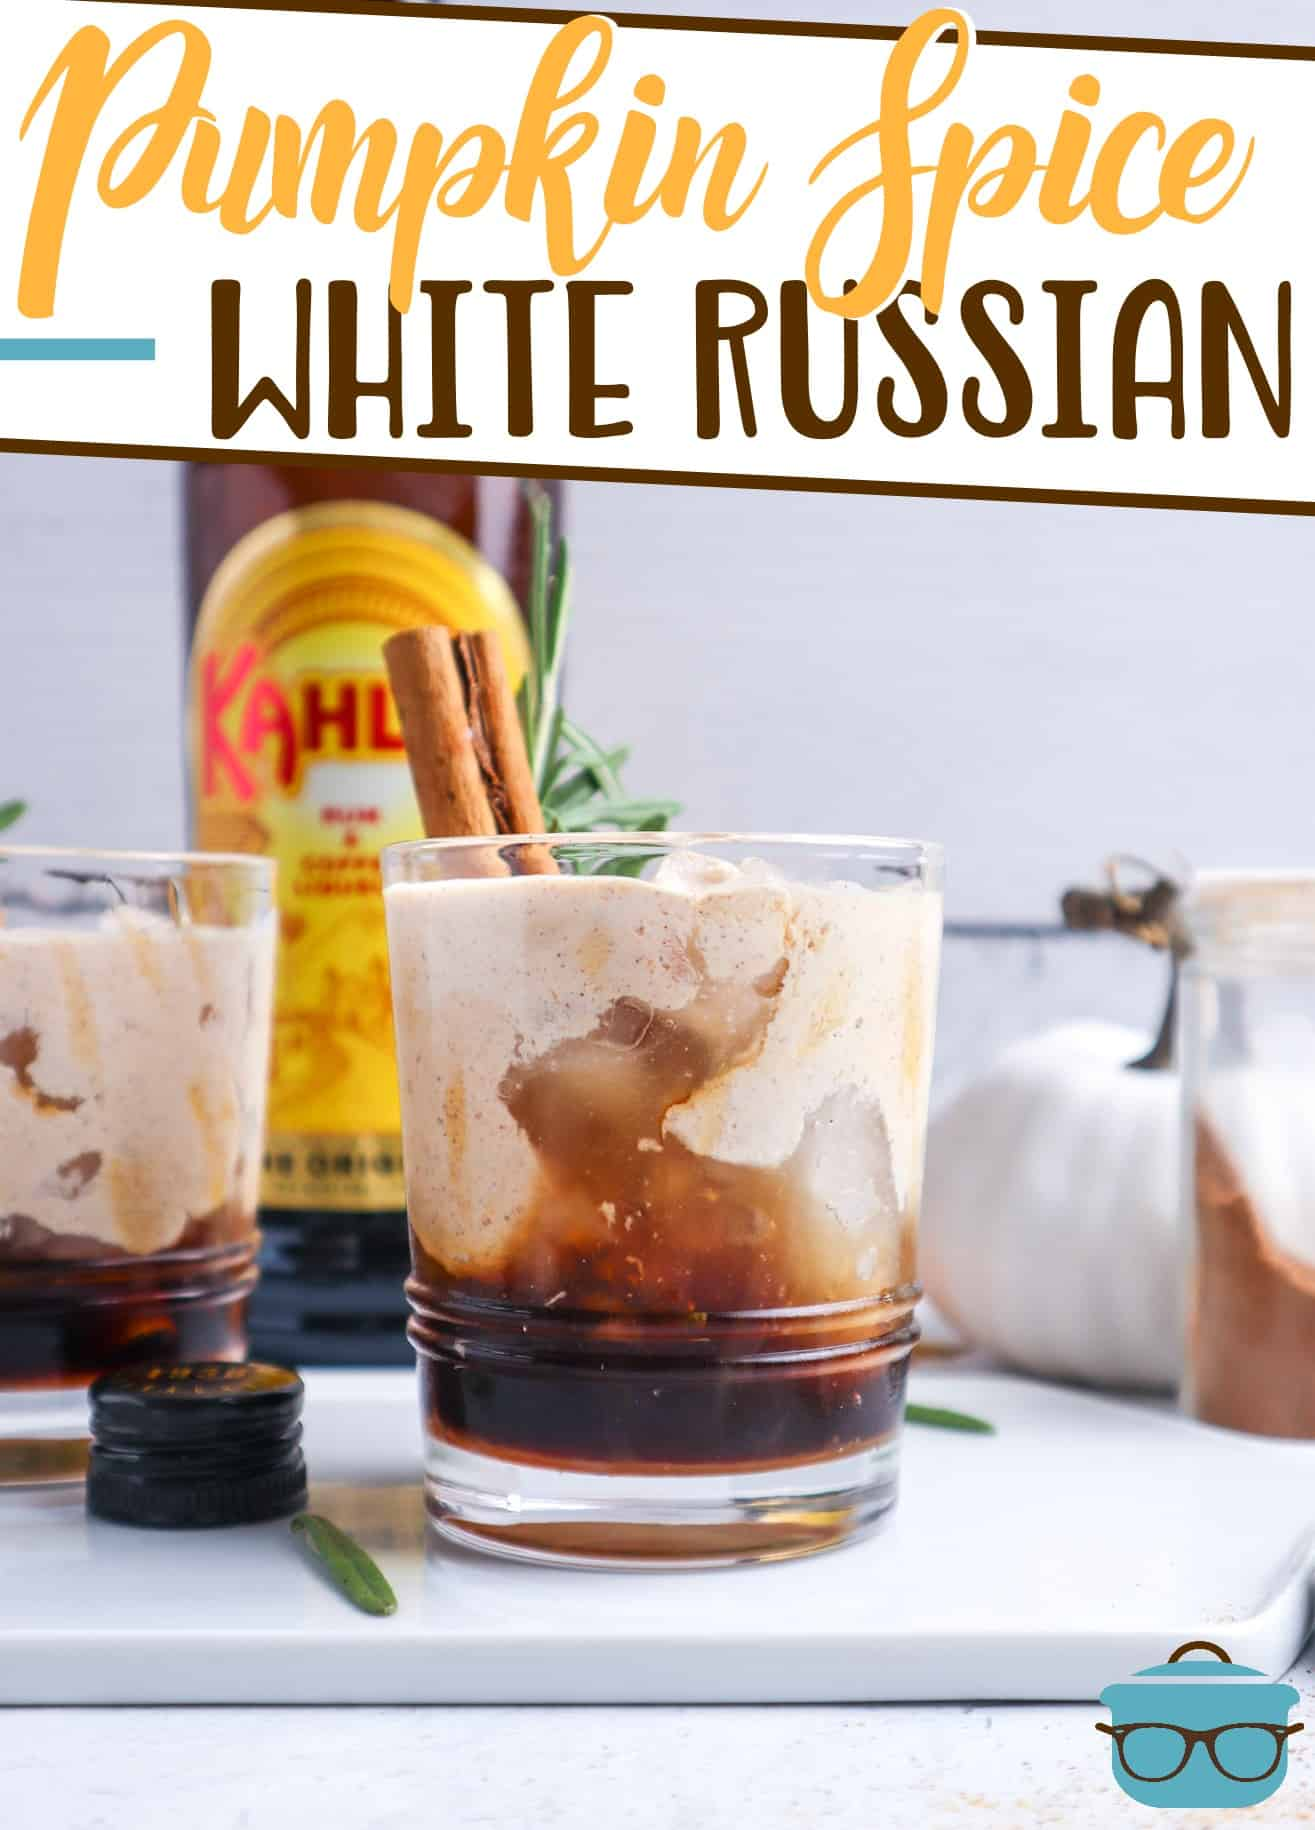 This Pumpkin Spice White Russian is the best autumn cocktail! Simple to make but so impressive. A warm, creamy fall-inspired drink!